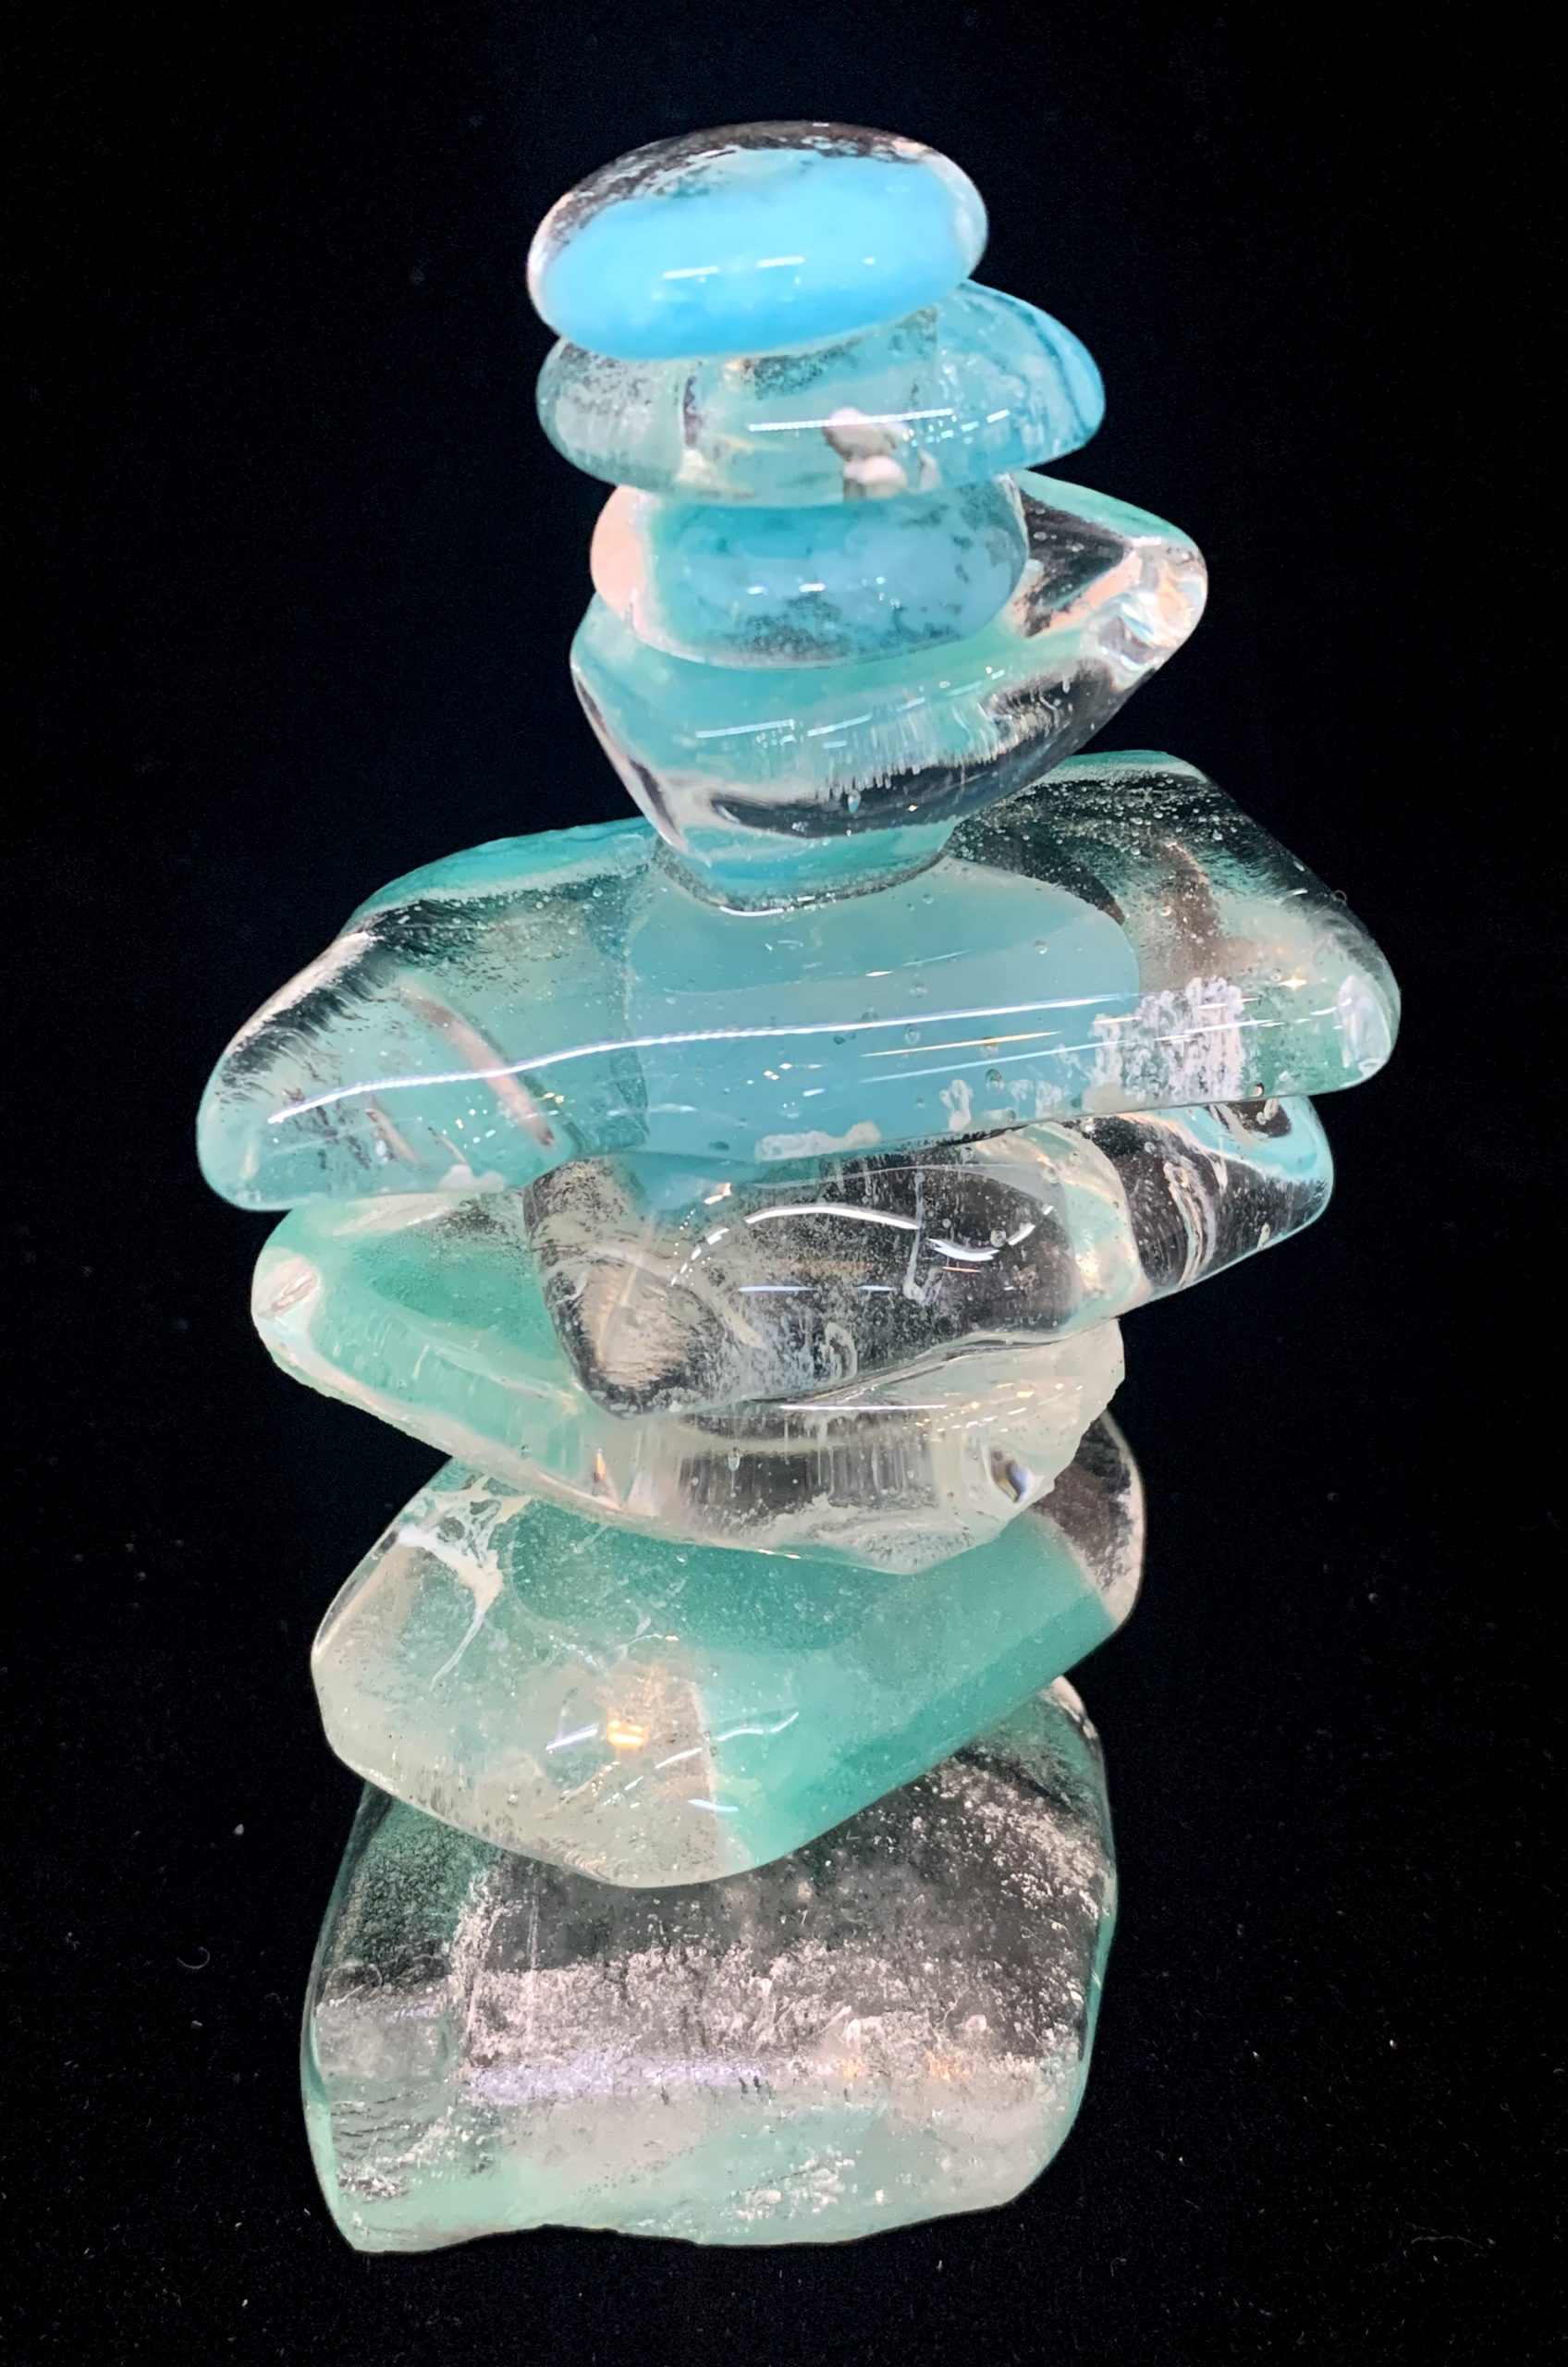 Cast Glass Rocky Mountain Cairn 10 by Heather Cuell | Effusion Art Gallery + Cast Glass Studio, Invermere BC